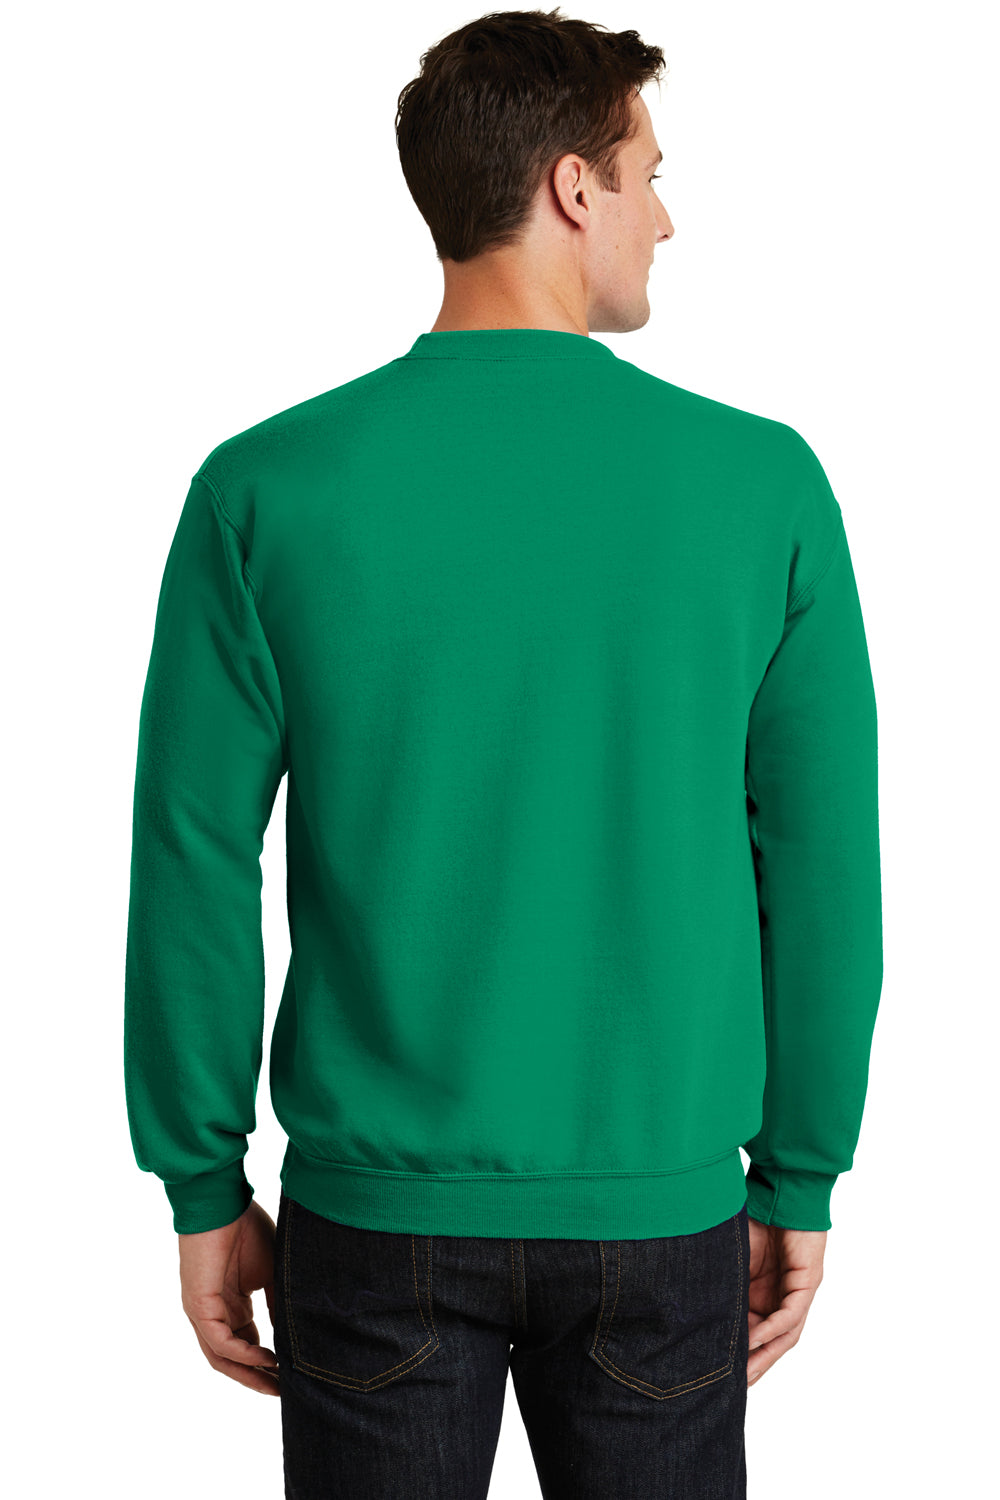 Port & Company PC78 Mens Core Fleece Crewneck Sweatshirt Kelly Green Back